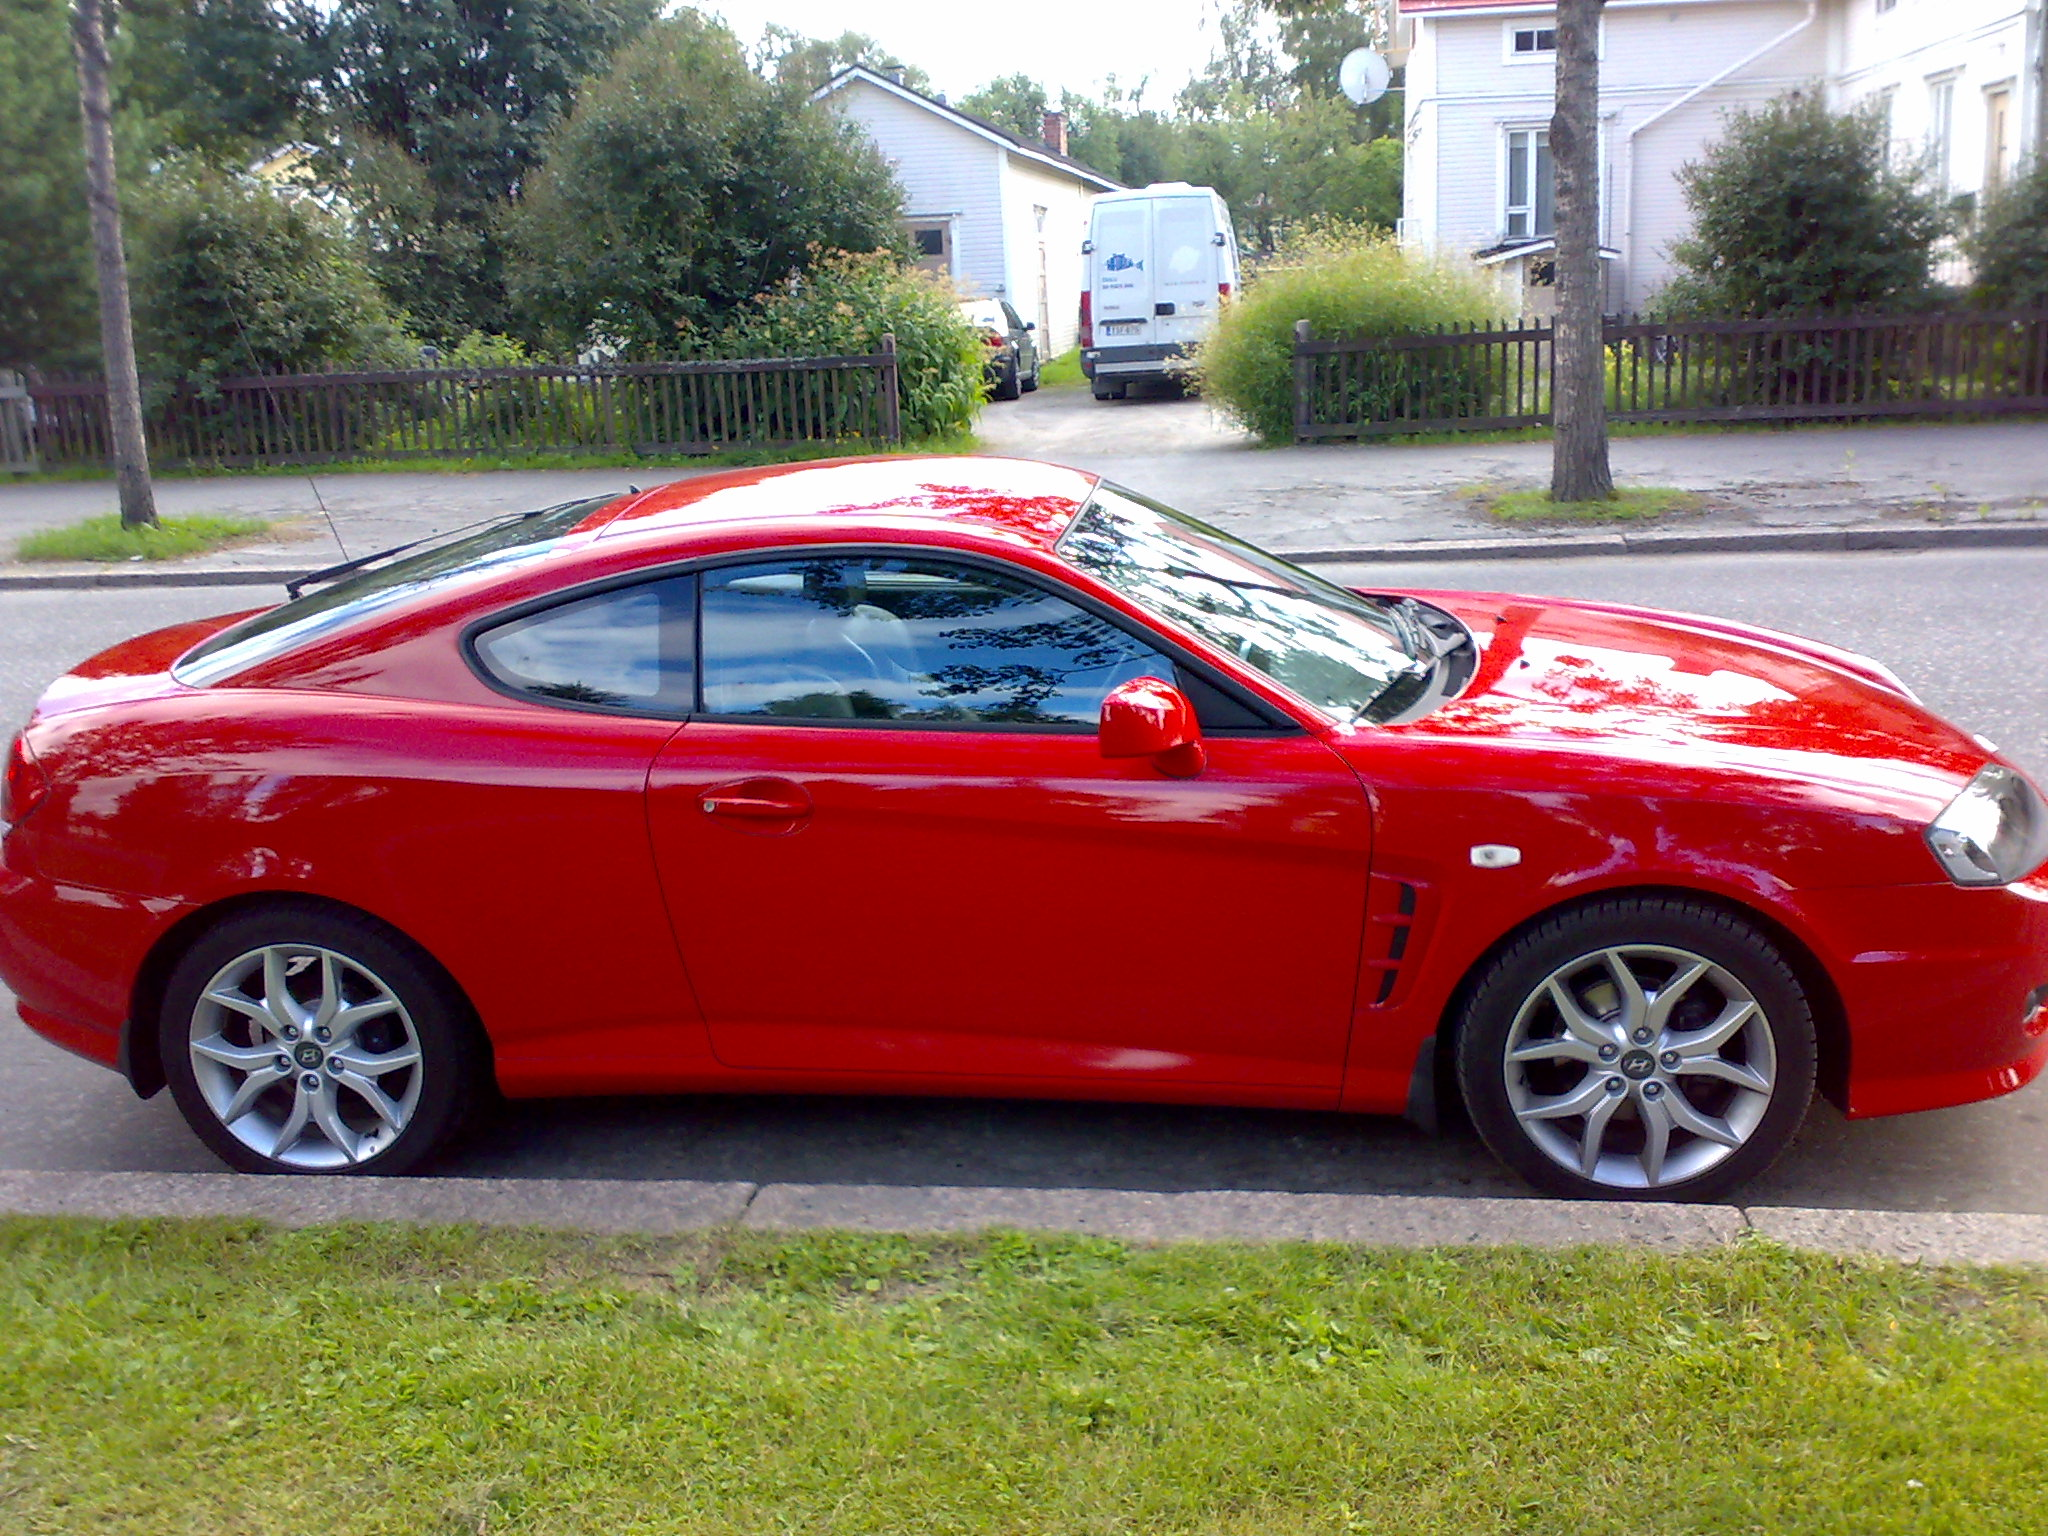 Wallpaper Amazing Convertible Cars Hyundai Coupe 2 7 V6 Gls Photos And Comments Www